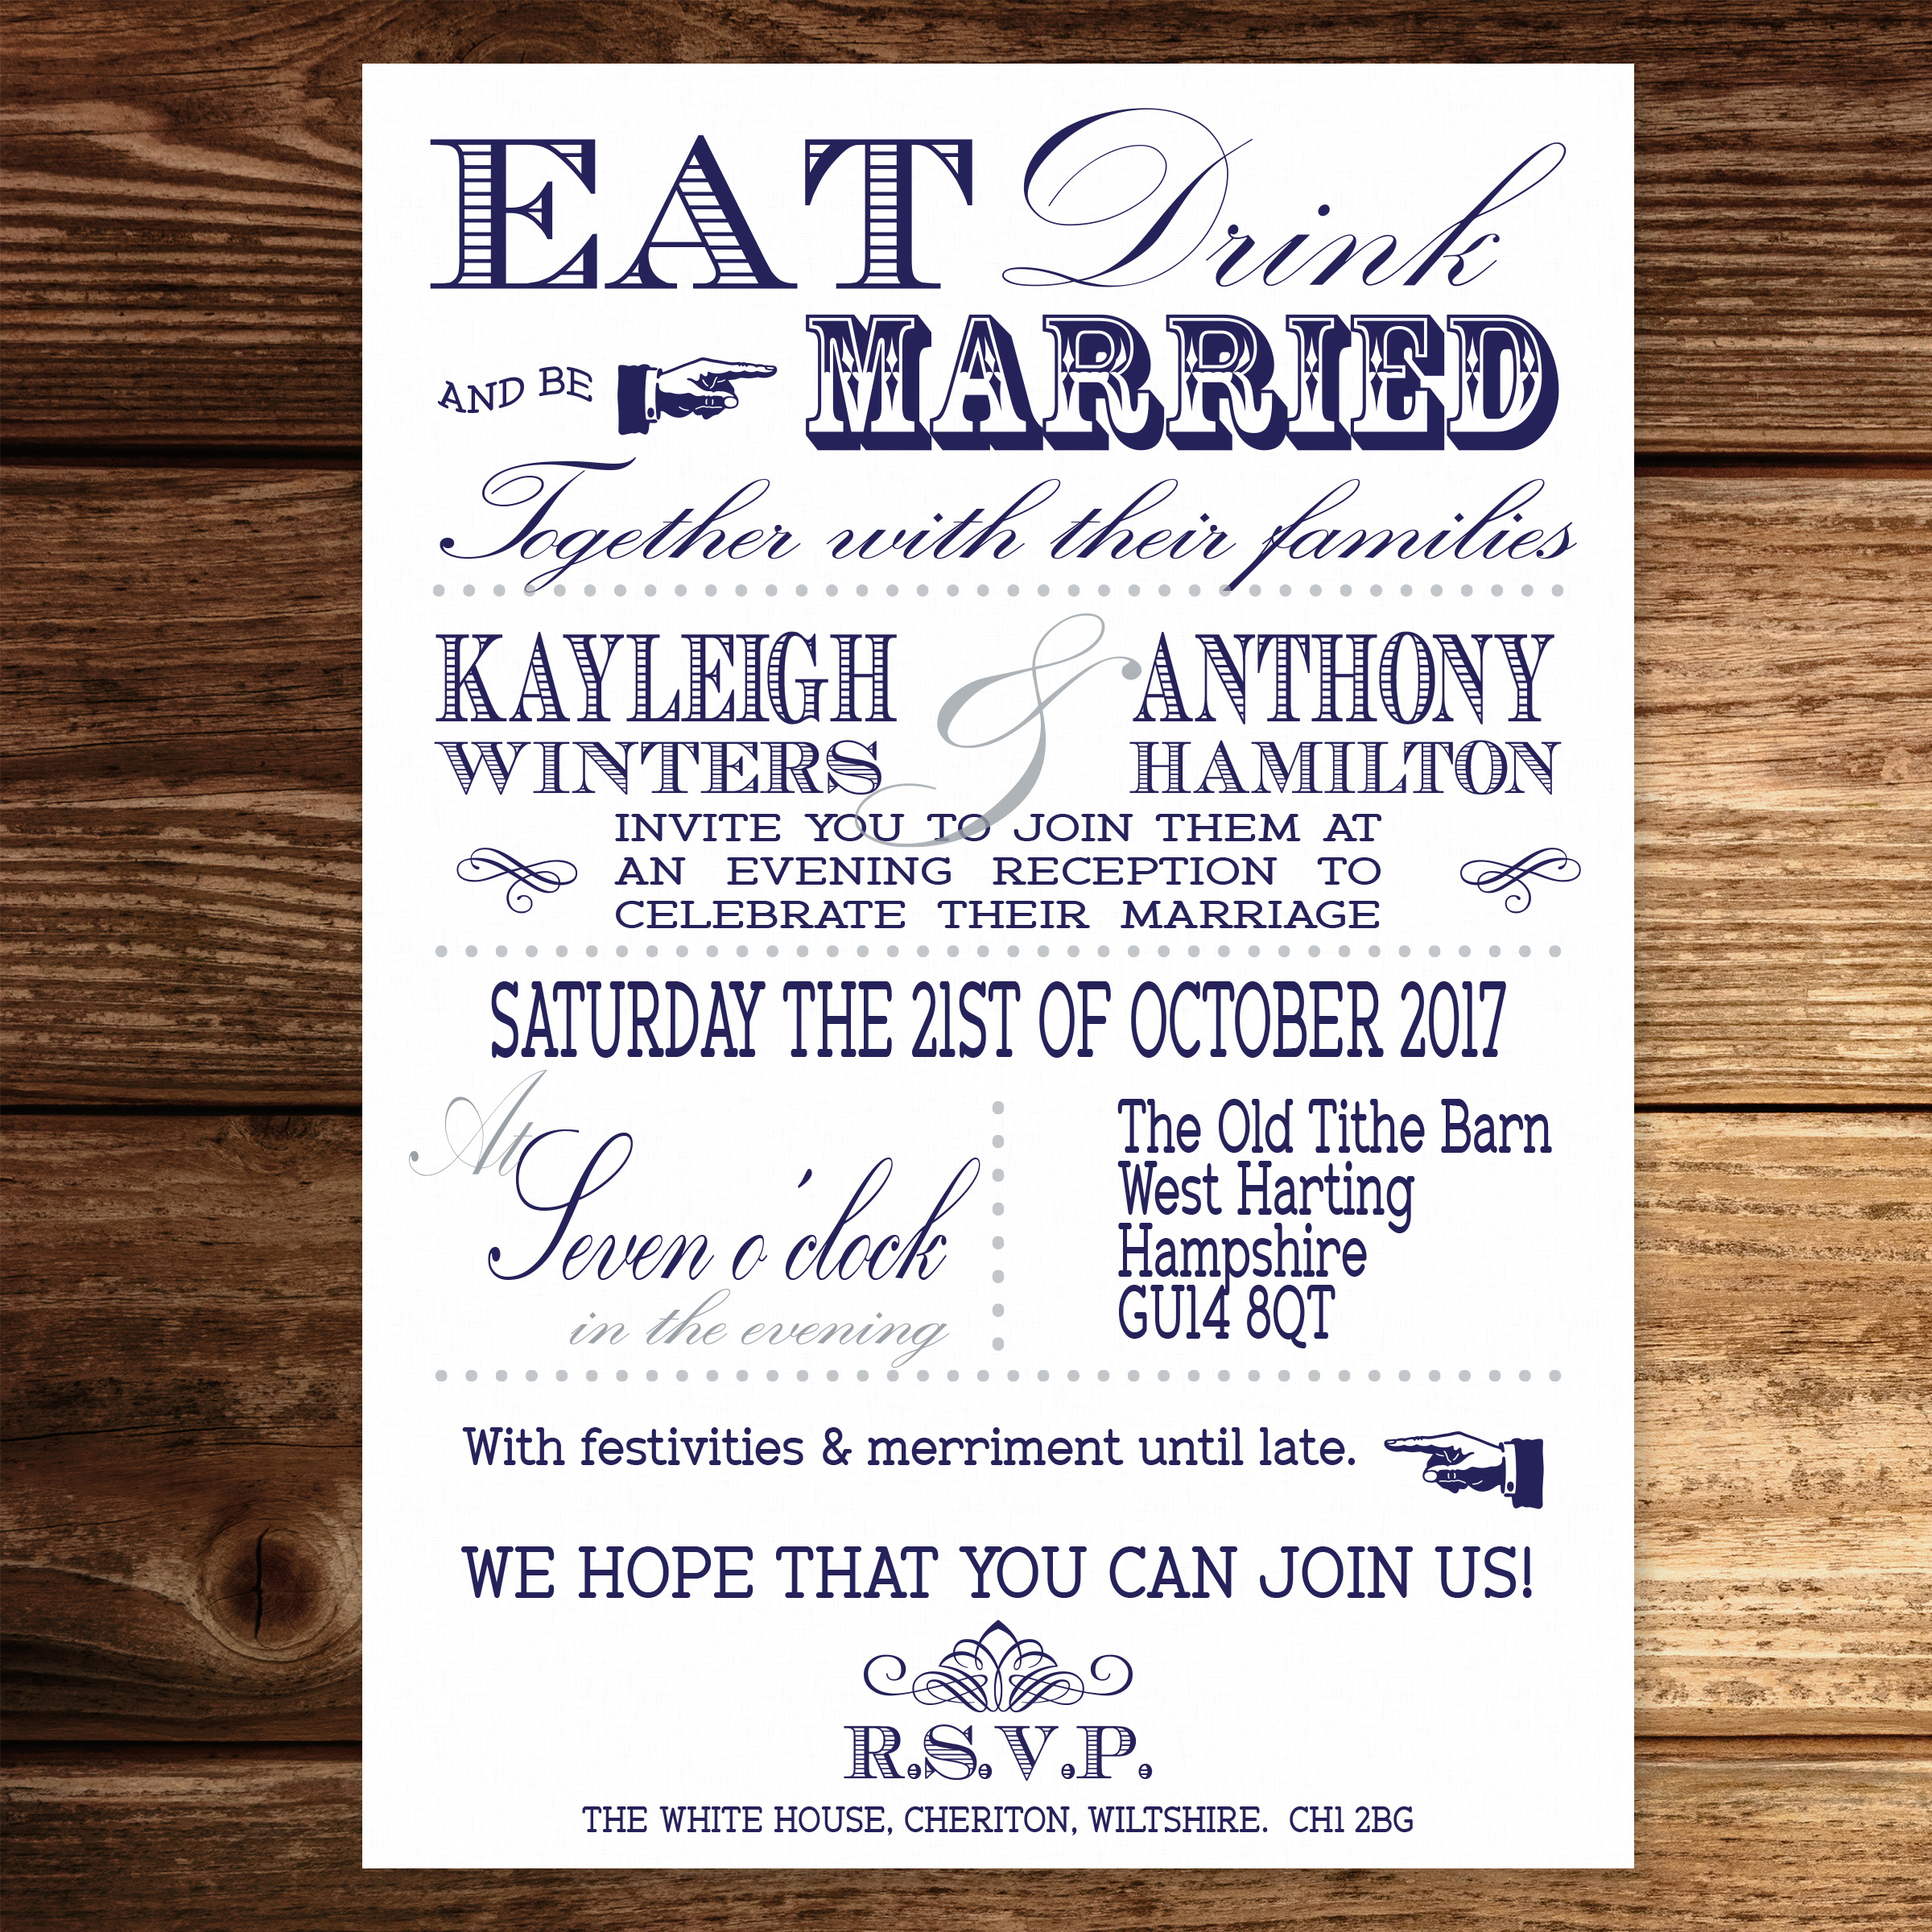 Vintage Fayre Blue on White Card - Evening Invitation